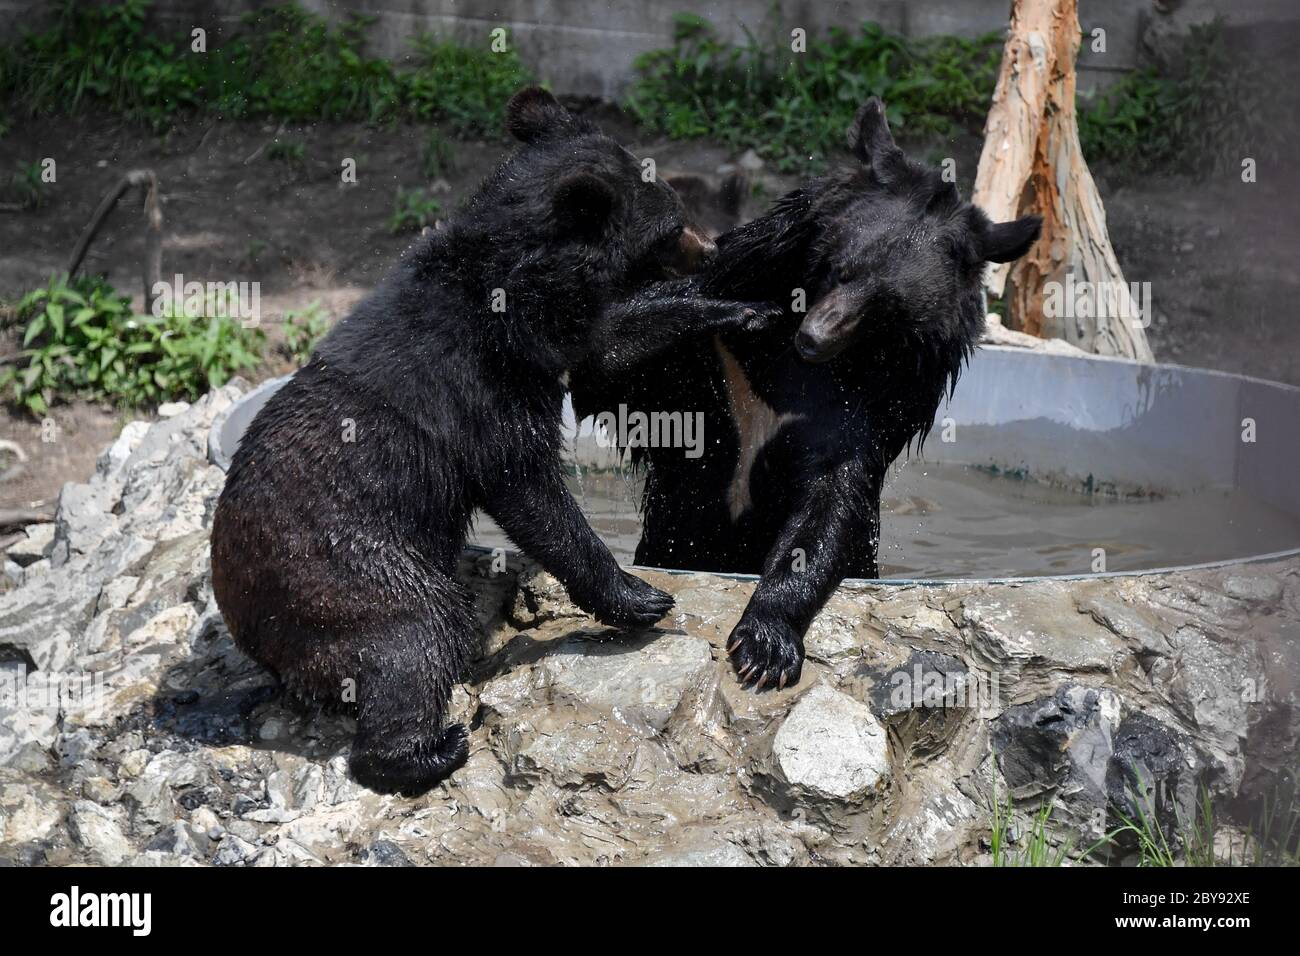 Vladivostok, Russia. 9th June, 2020. Asian black bears play in the Sadgorod Zoo during the pandemic of the novel coronavirus disease (COVID-19). On 6 June, open air zoos re-opened in Vladivostok after two months of being closed. The Primorye Territory, including Vladivostok, has been in lockdown since 31 March. Lockdown restrictions have been eased since 26 May. Credit: Yuri Smityuk/TASS/Alamy Live News Stock Photo